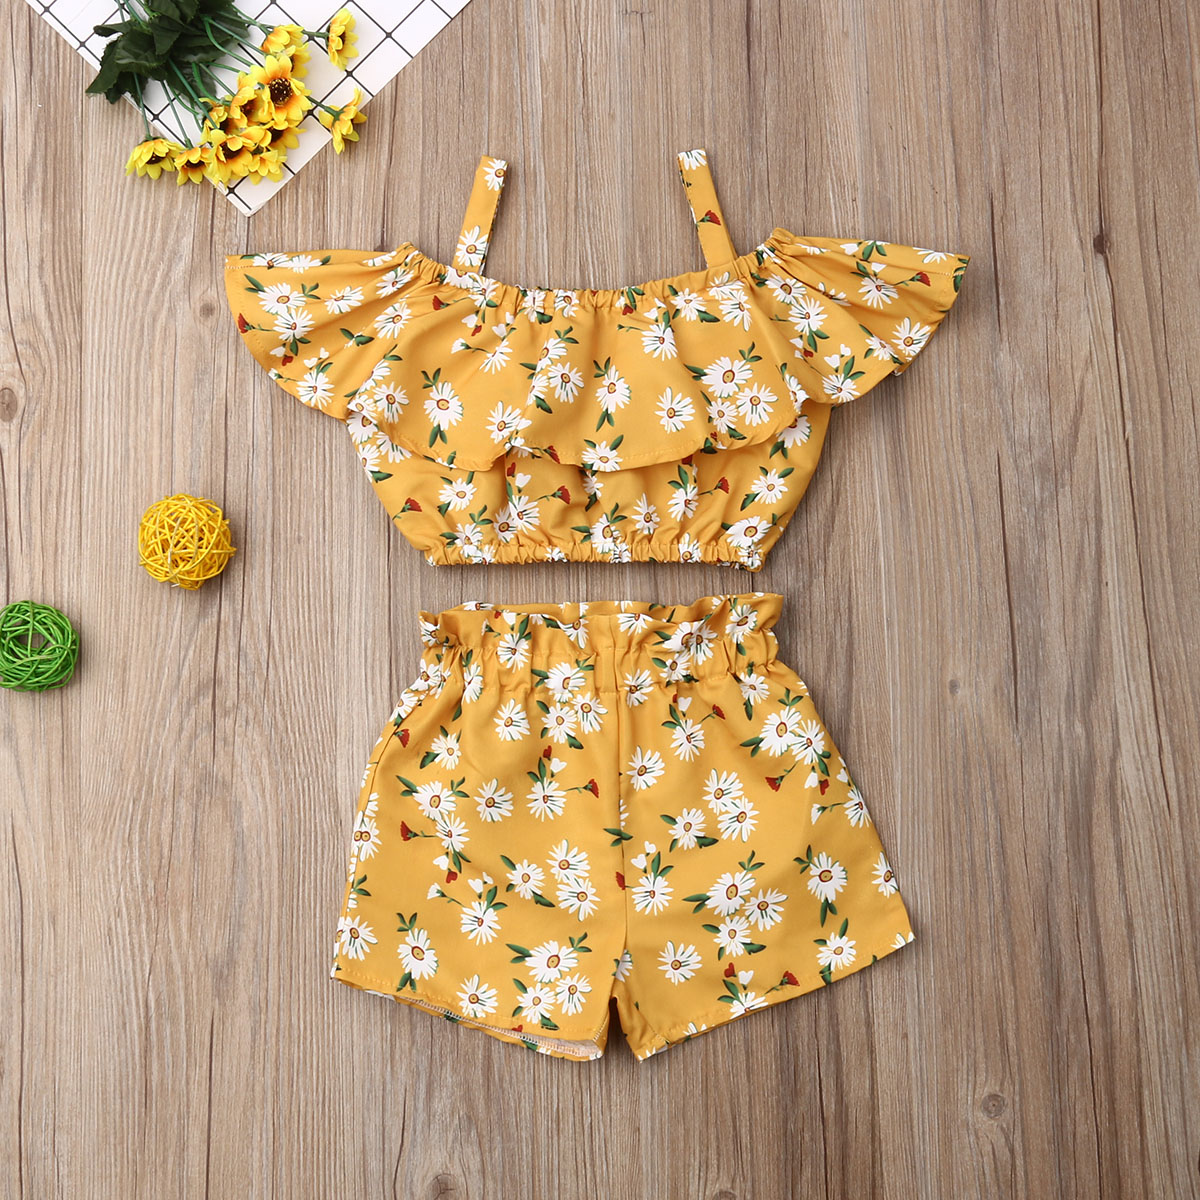 Pudcoco Newest Fashion Summer Toddler Baby Girl Clothes Off Shoulder Ruffle Sling Crop Tops Short Pants 2Pcs Outfits Clothes